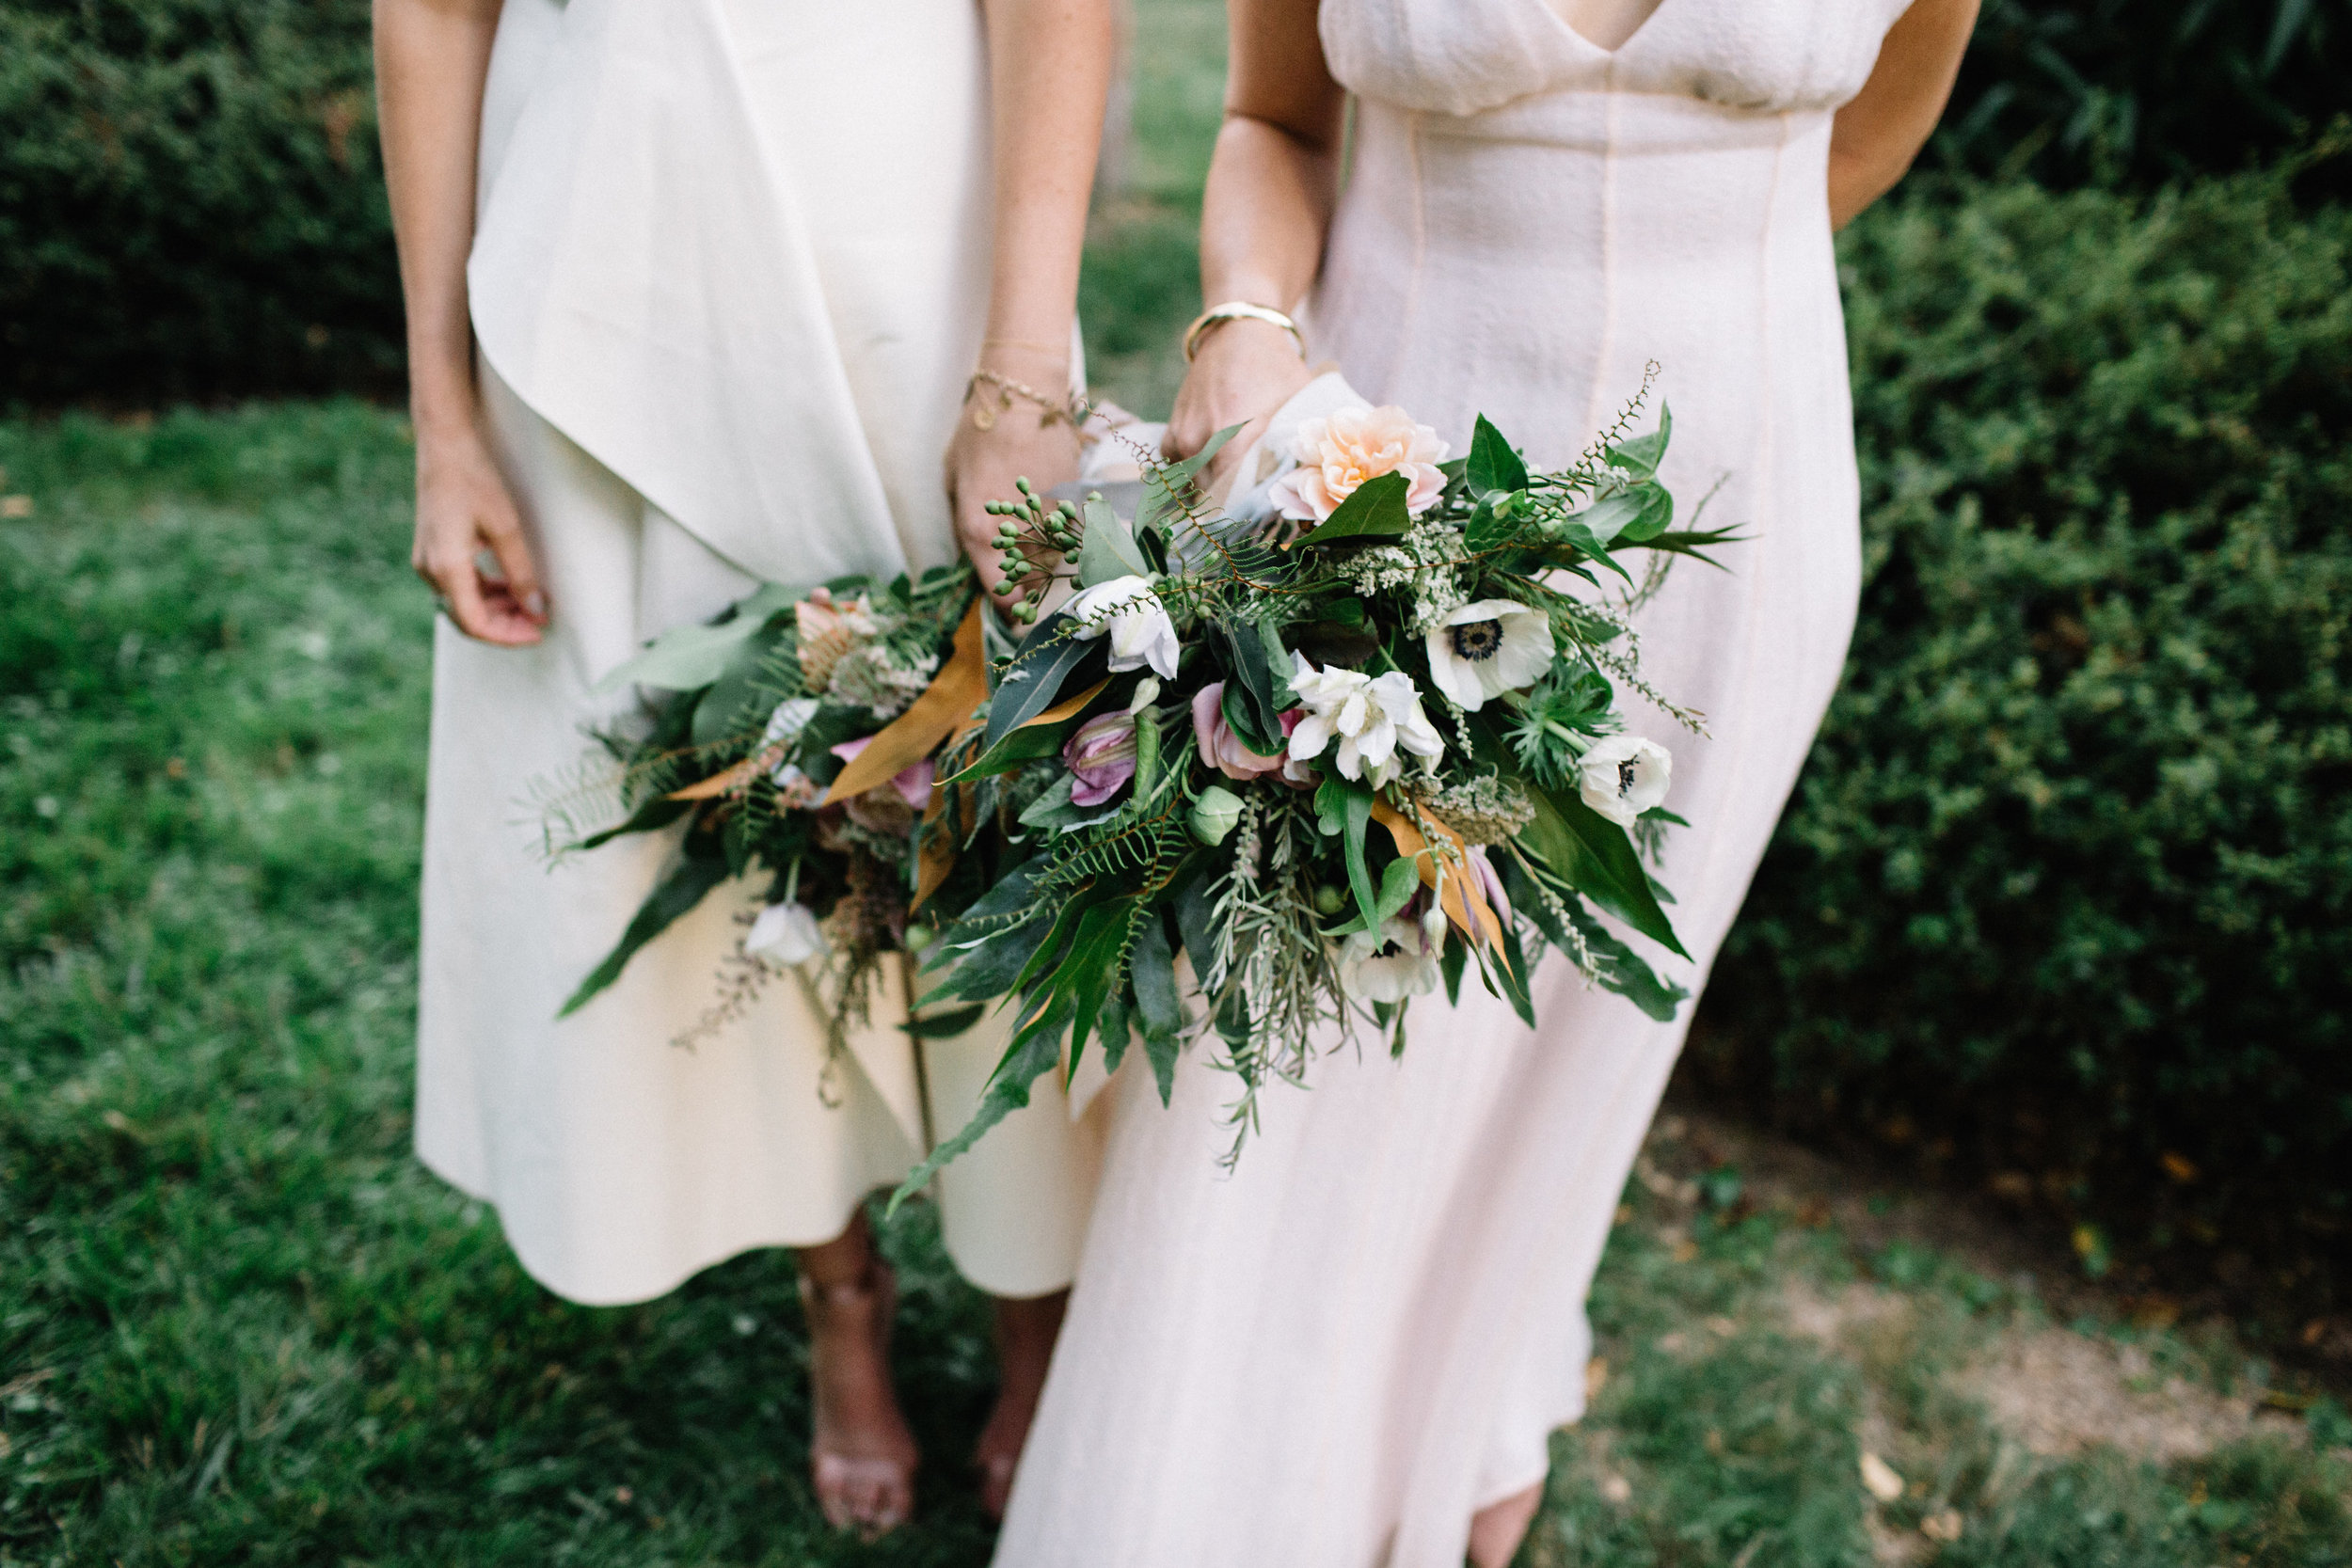 Textural greenery bouquets with Ferns, Anemones, Clematis, Yarrow, and Garden Roses by Venn Floral photographed by Lucille Lawrence in Anderson Valley, California.